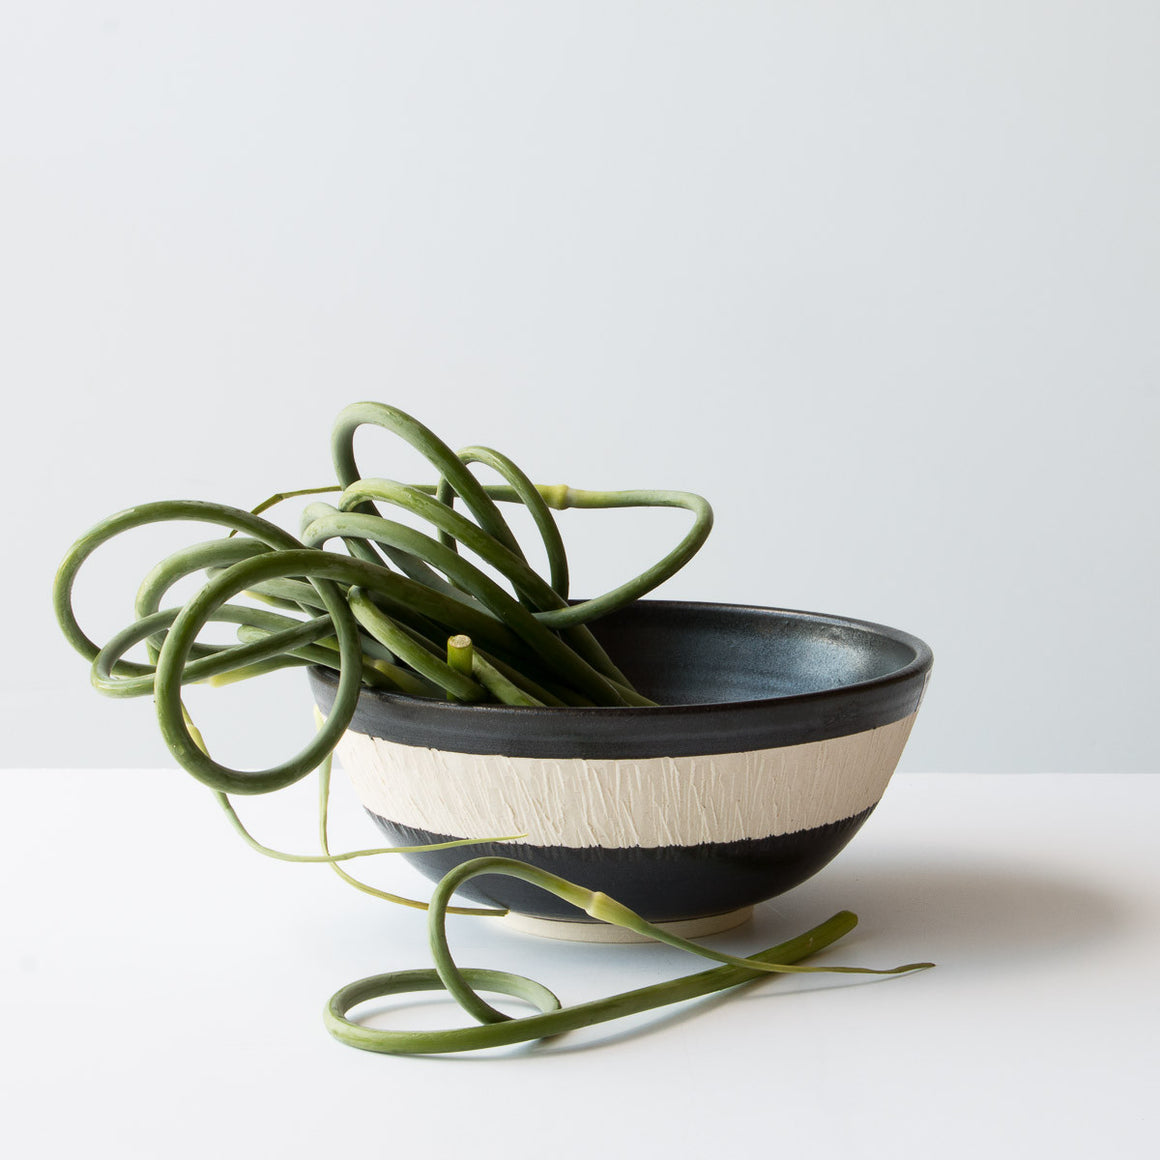 Beautiful ceramic bowl - Beau bol en céramique